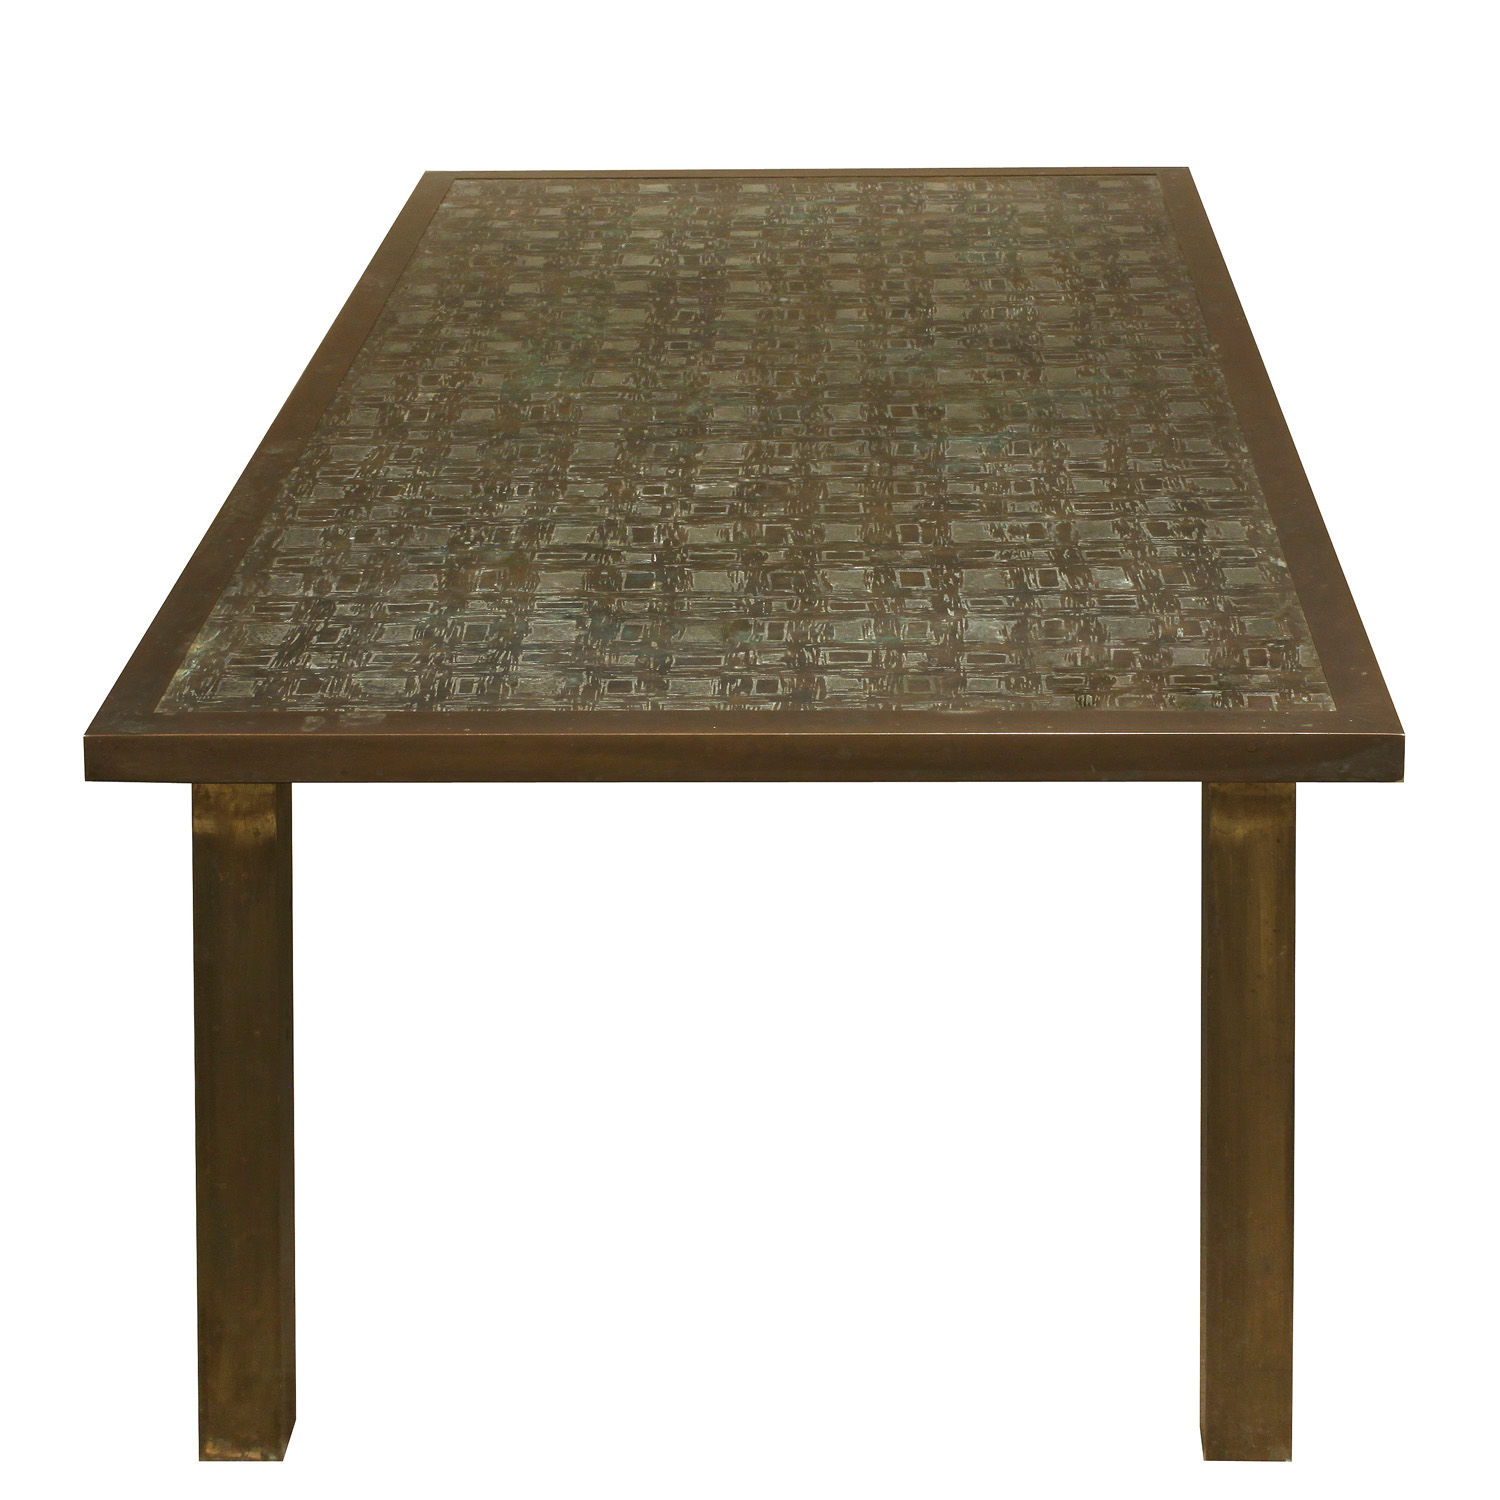 LaVerne 180 Fantasia rect coffeetable406 hires side.jpg